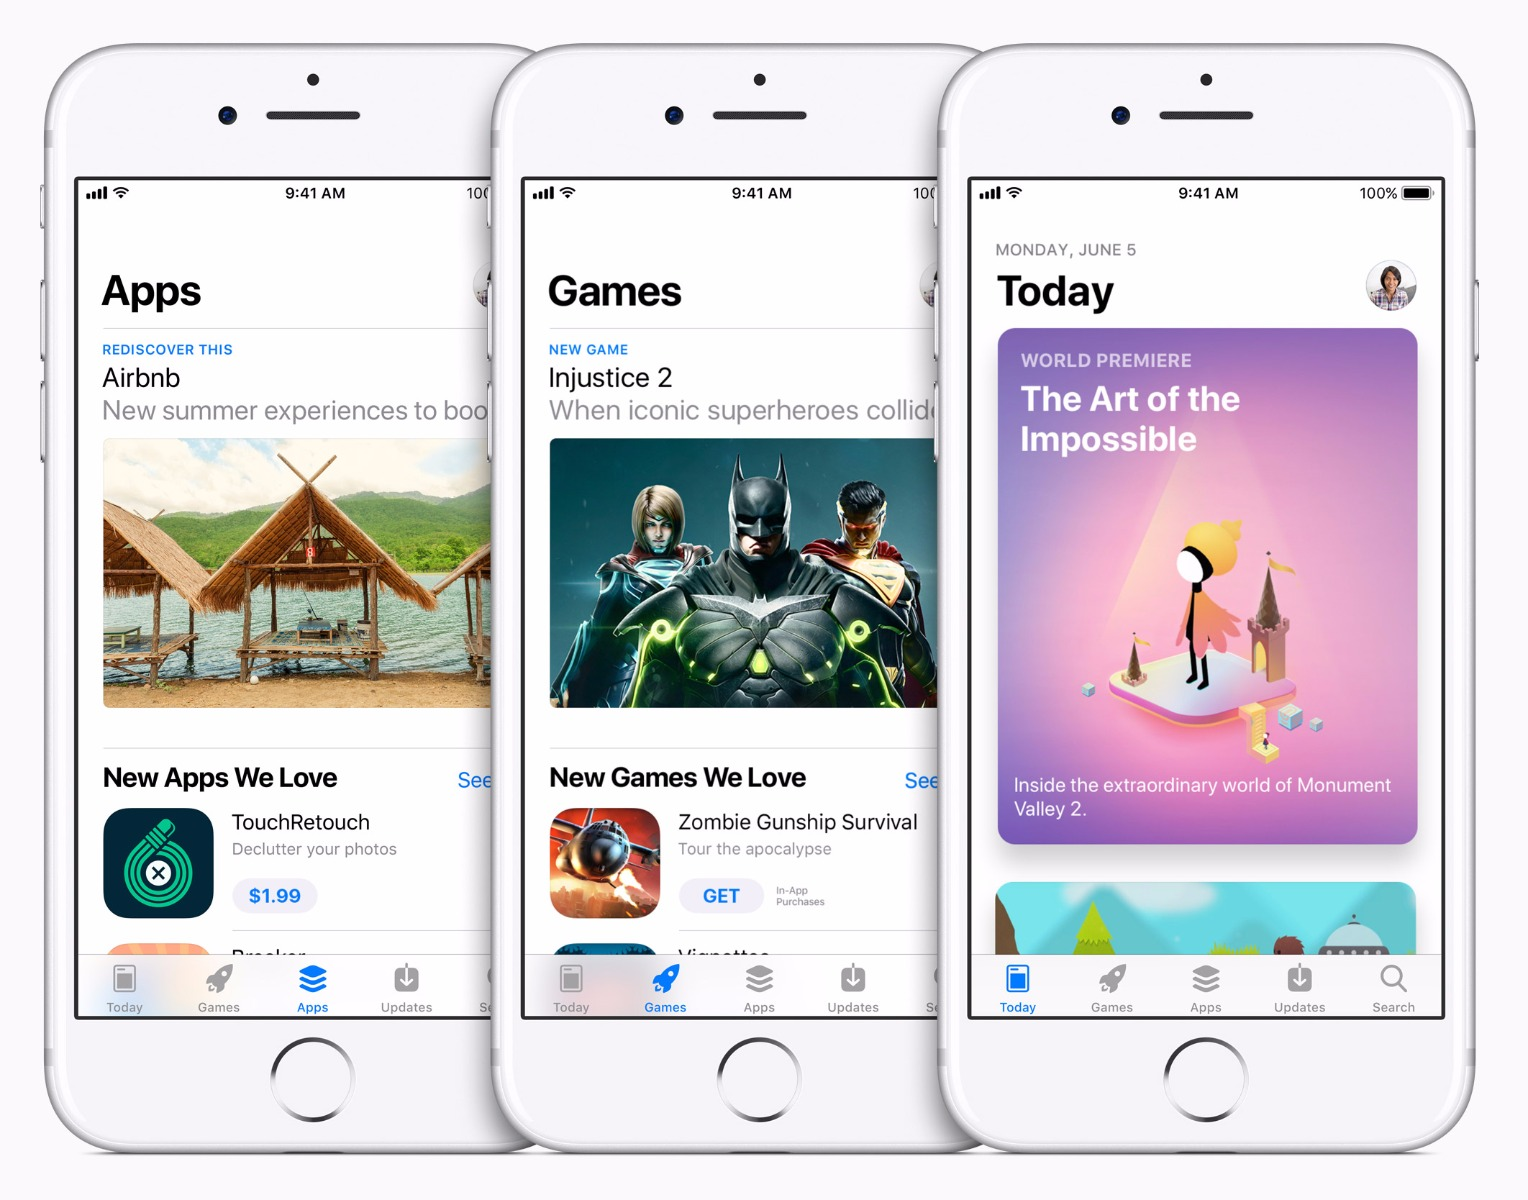 Apple Announces iOS 11 With All-New App Store, Native AR Support, iPad Productivity Perks